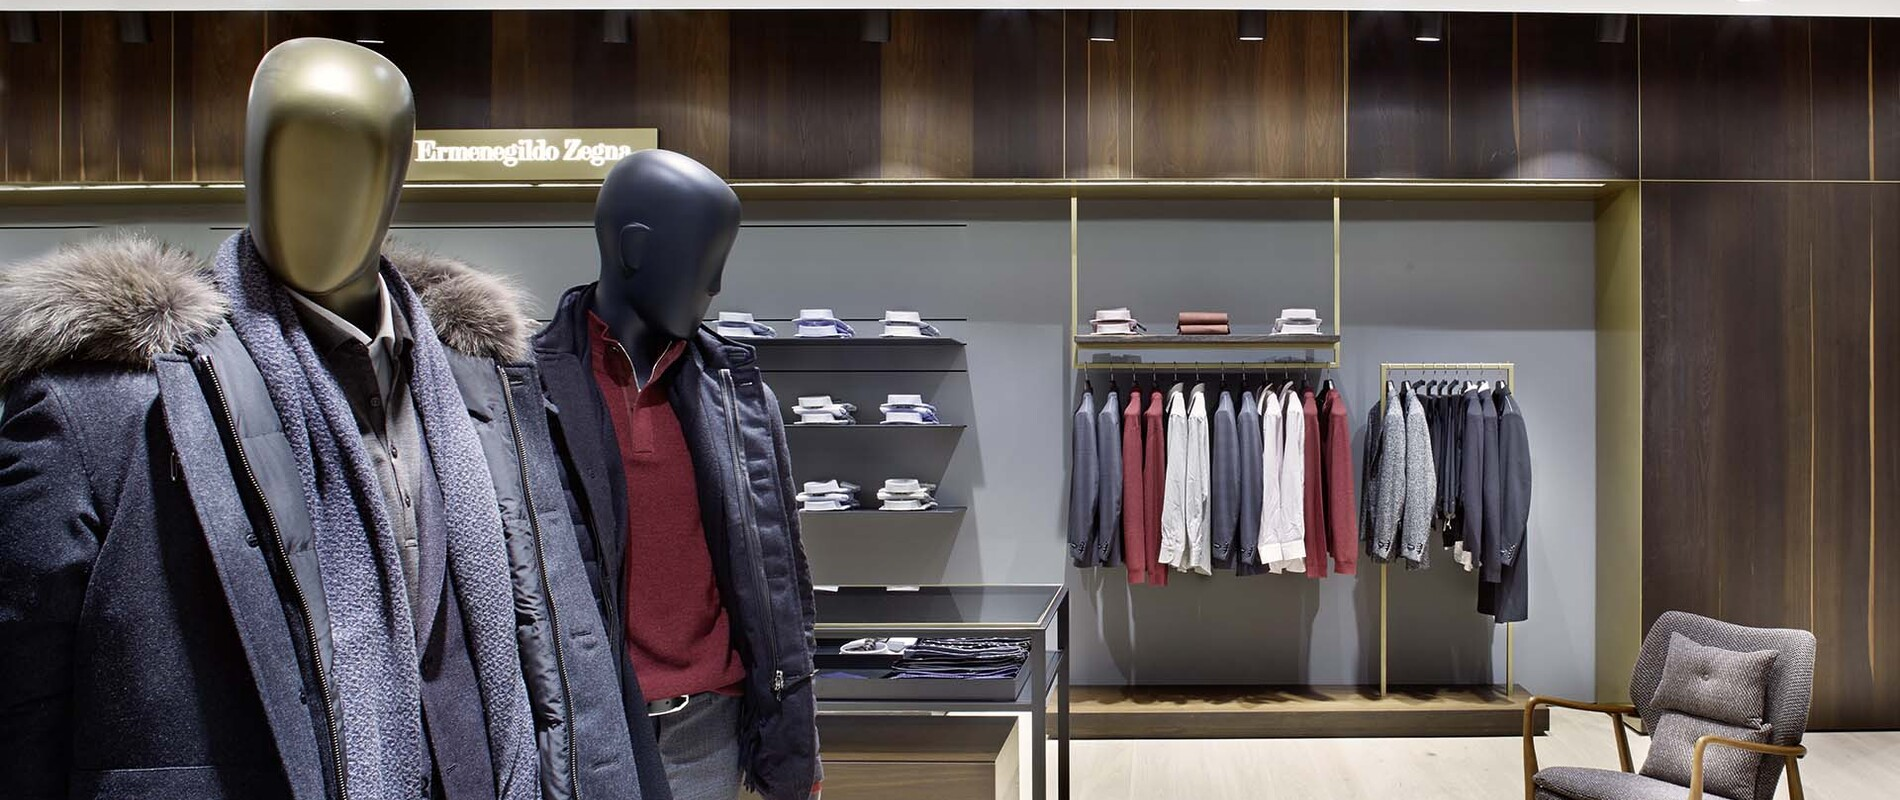 mens fashion store - conception- design - realization - Mode Reischmann Ulm - mannequins in front of wooden clothes display wall - lounge chair